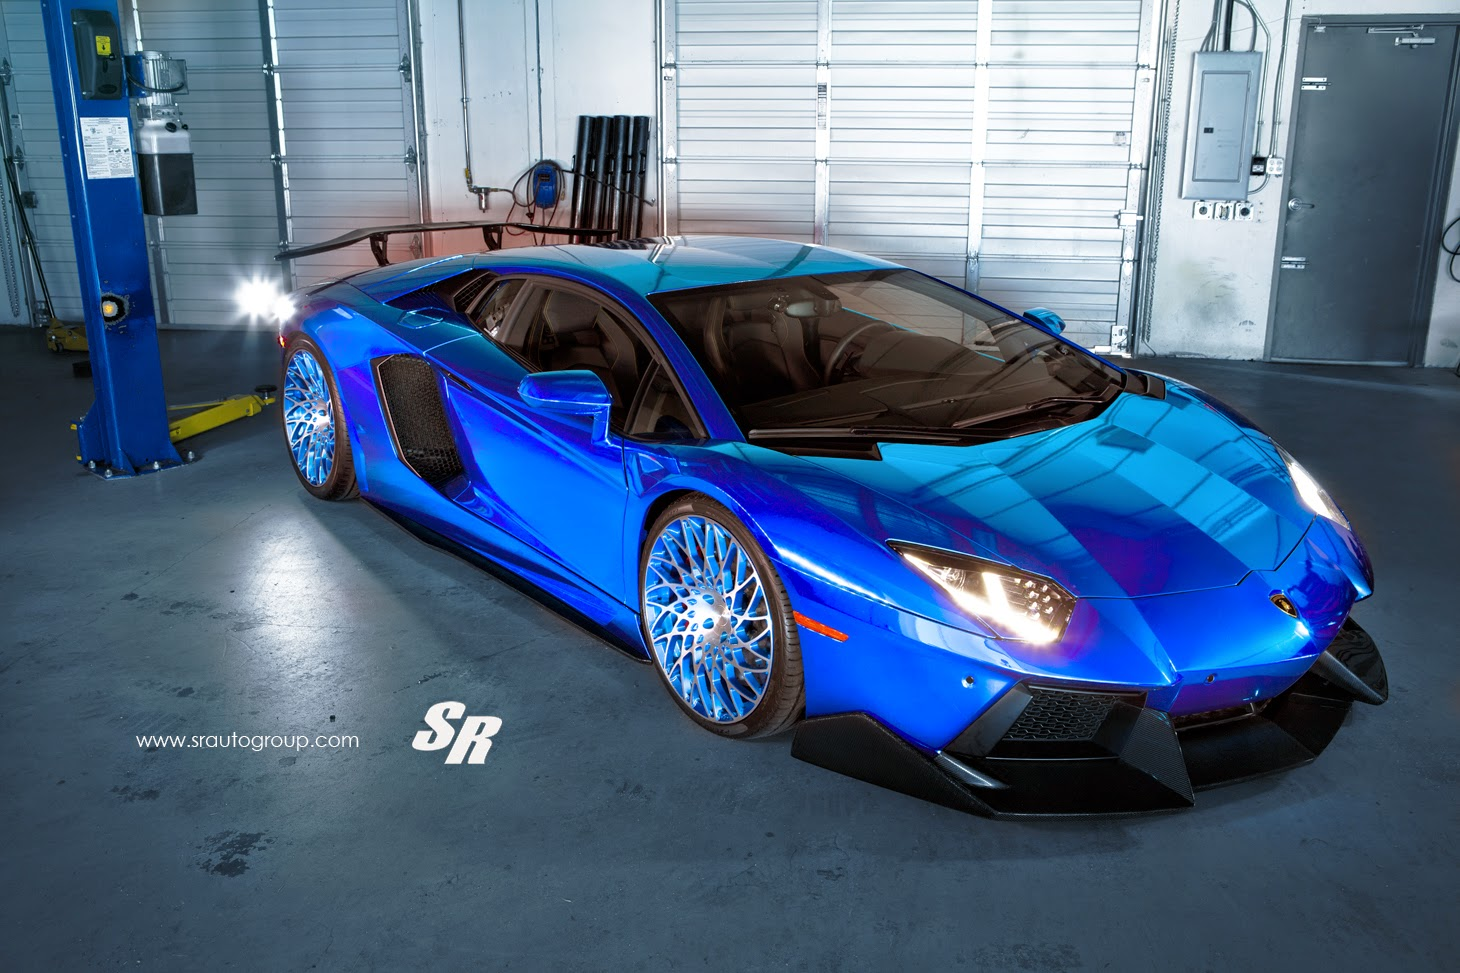 Latest Pur Lamborghini Aventador Fitted With Crazy Wheels